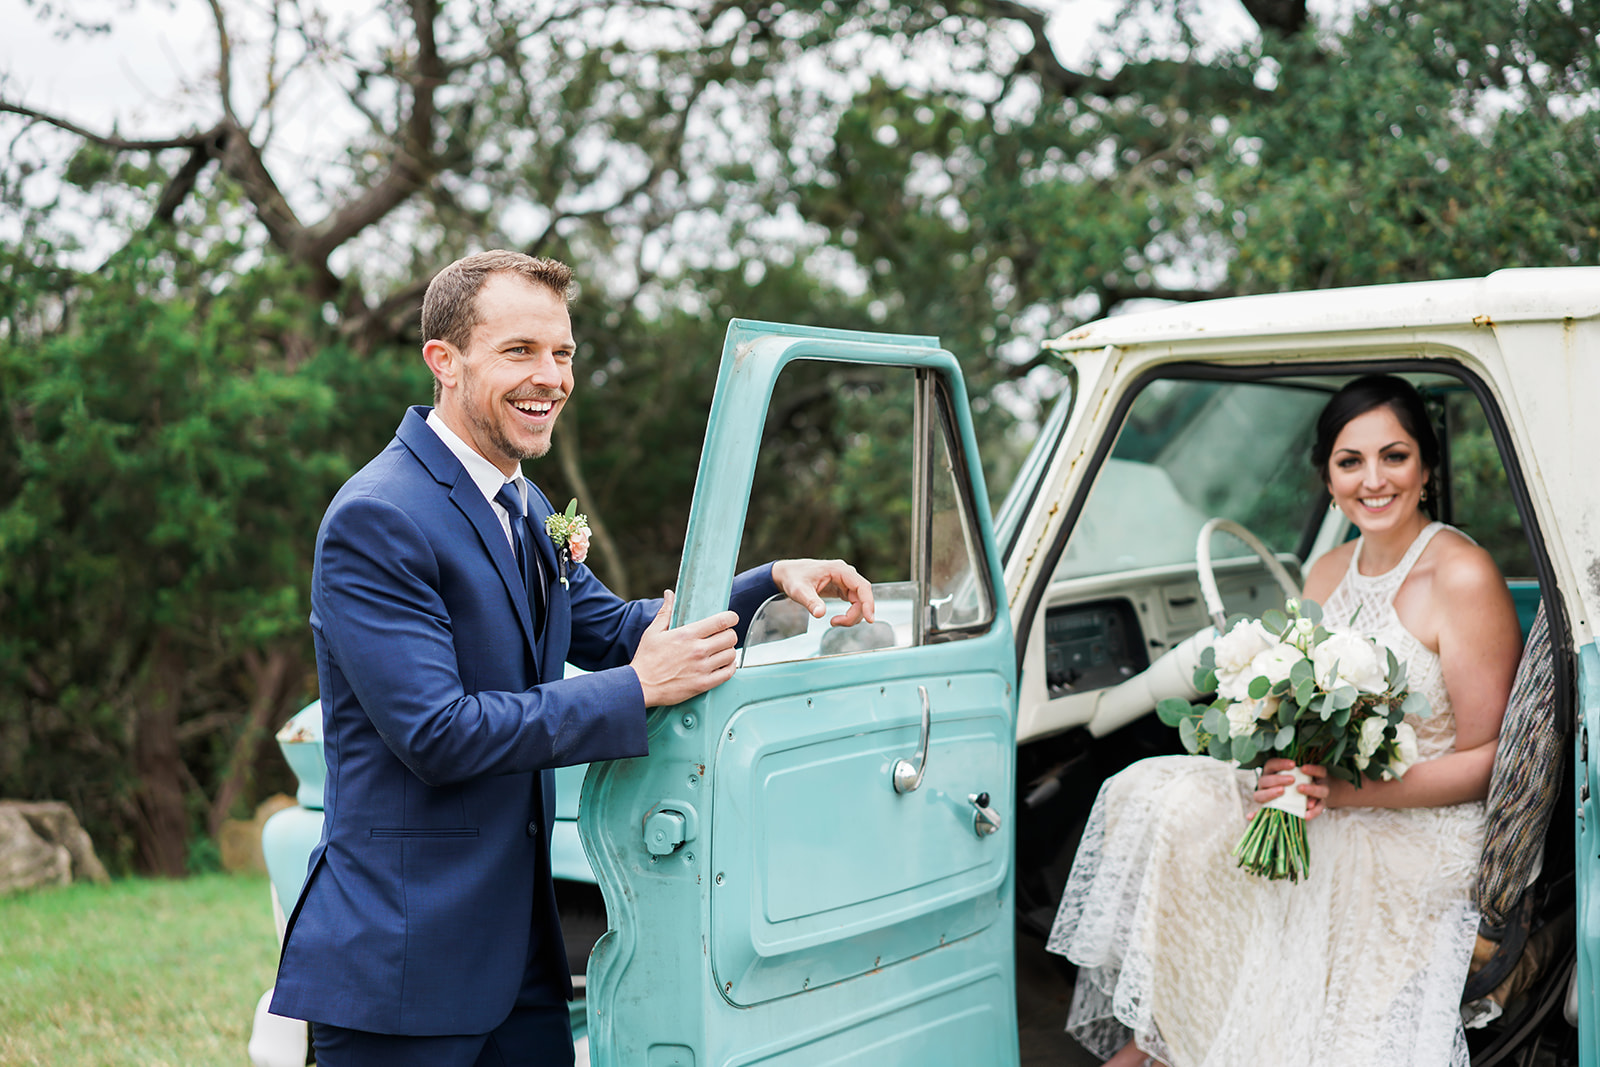 Austin Wedding Photographer | Intimate Austin Wedding Photos | Chapel Dulcinea Wedding | Austin Wedding Venue | Austin Elopement | Caitlin Rose Photography | Hill Country Wedding